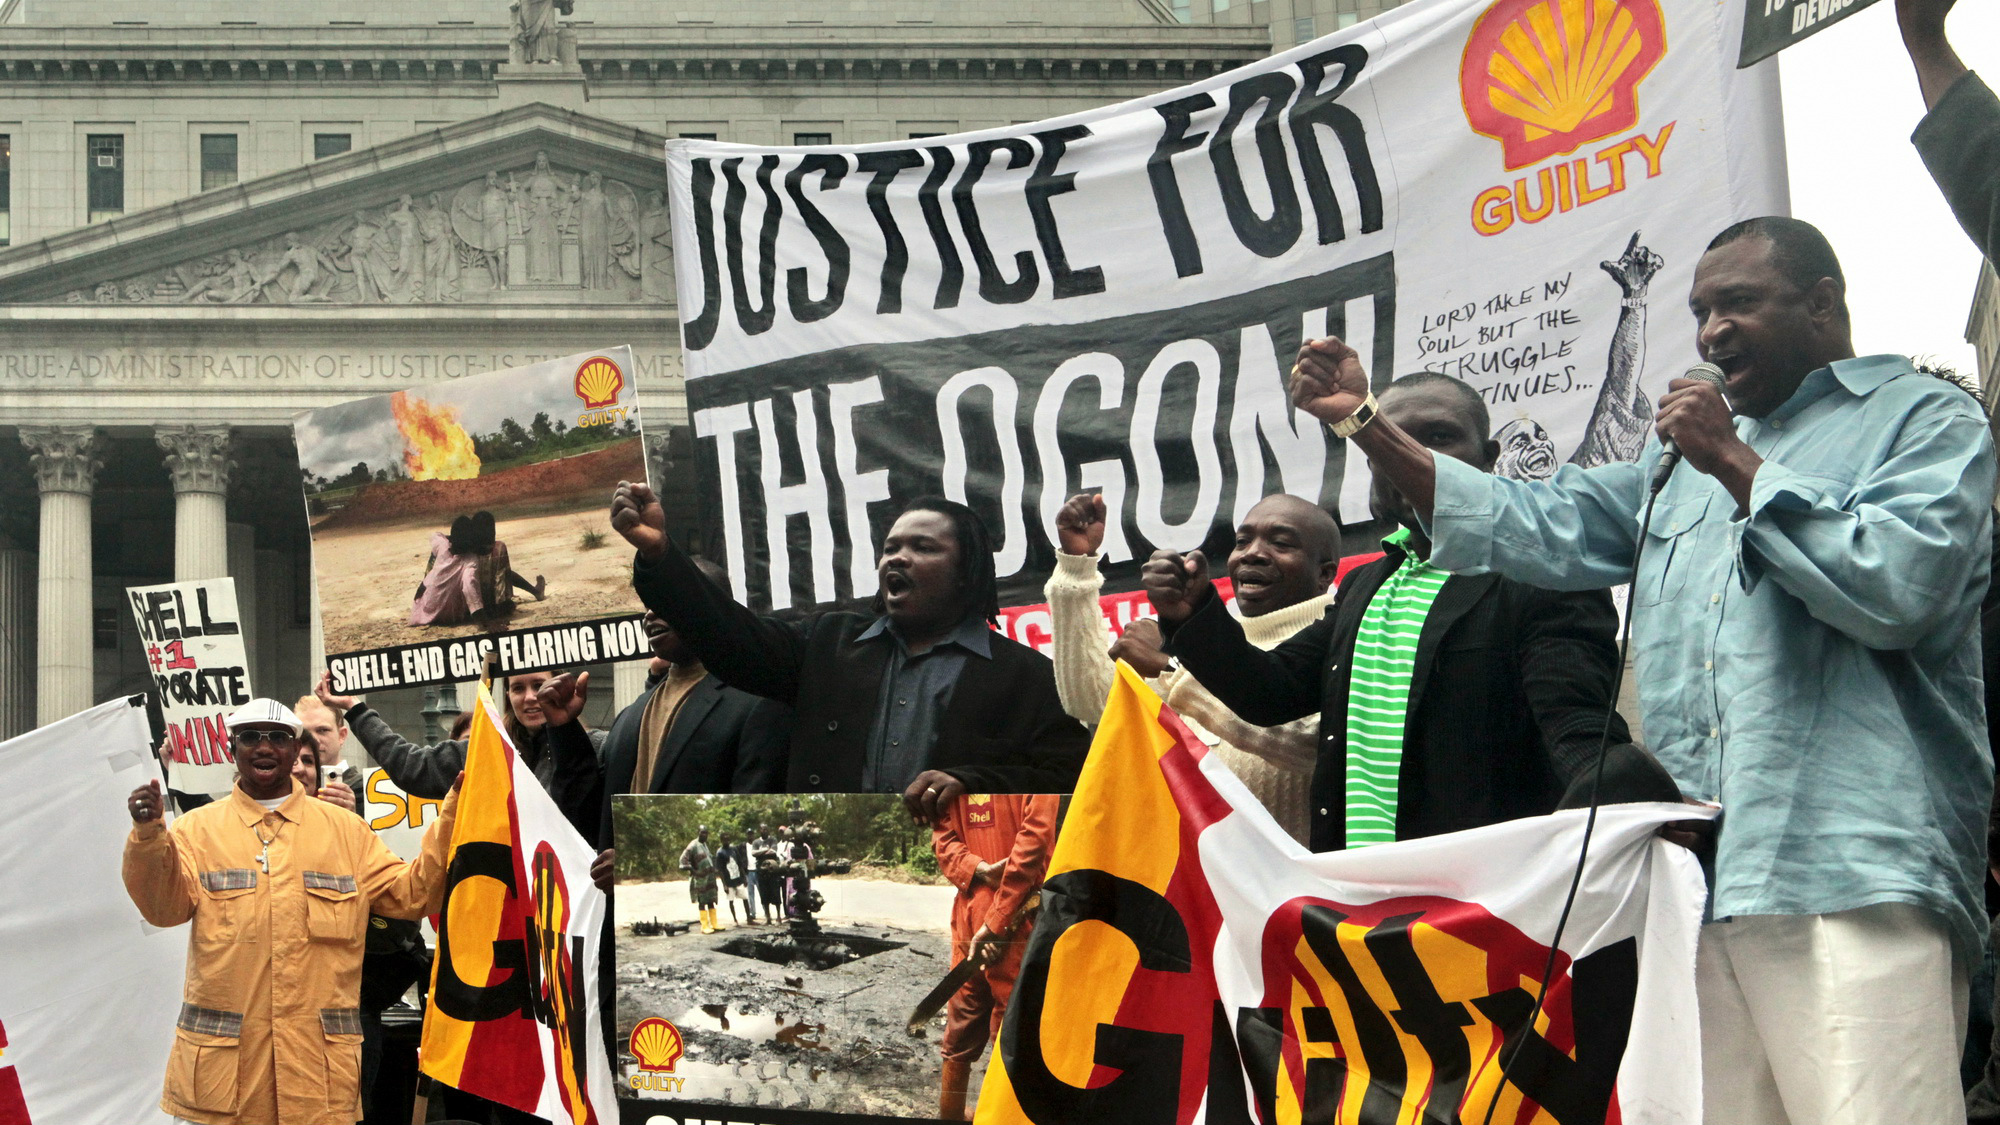 """Ben Wulloo Ikari, far right, a member of Nigeria's Ogoni community, leads a rally to raise awareness of the upcoming New York trial of the Royal Dutch Shell oil company charged with complicity in the death of countryman Ken Saro-Wiwa and human rights abuses in Nigeria, New York, Wednesday May 27, 2009. Ikari, who worked as a human rights activist with Saro-Wiwa and was granted political asylum to the U.S. in 1995 following his death, shared the expectation that Shell """"will finally answer for its role in atrocities committed against the Ogoni people of Nigeria."""" (AP Photo/Bebeto Matthews)"""